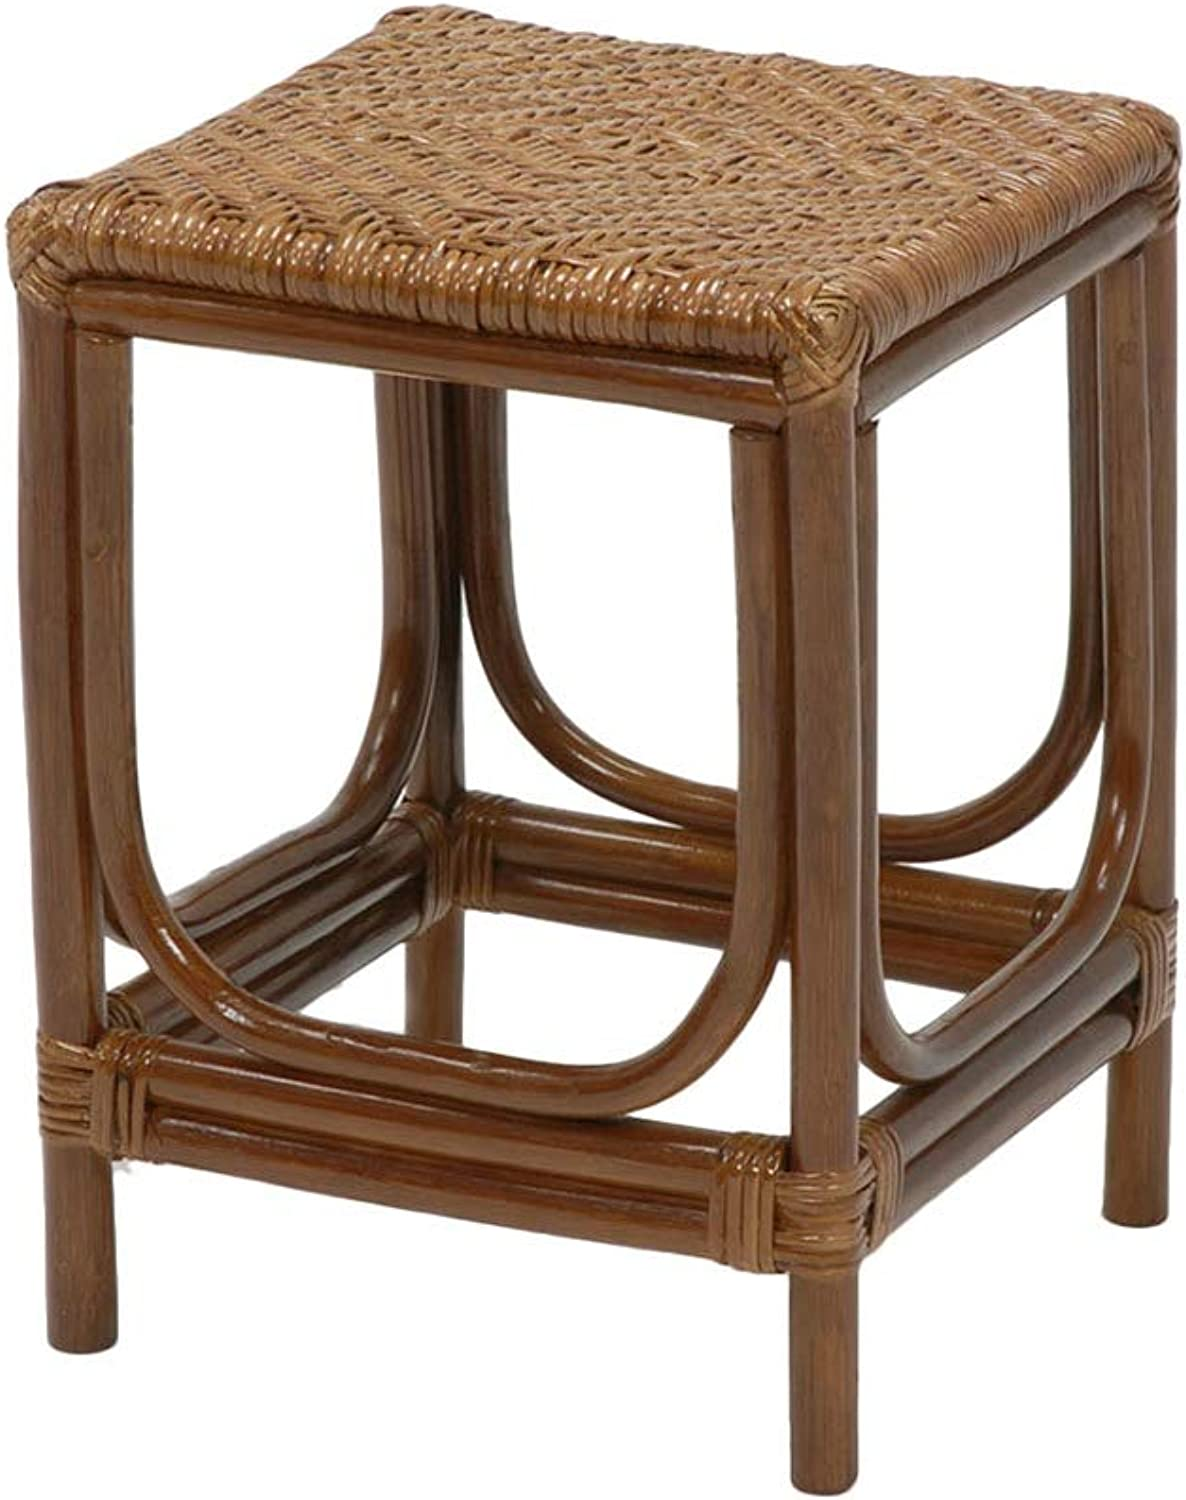 AGLZWY Rattan Stool Multipurpose Hand Weaving Cozy Breathable Strong Bearing Capacity Home Square Stool Footstool, Brown (color   Brown, Size   33X33X45CM)